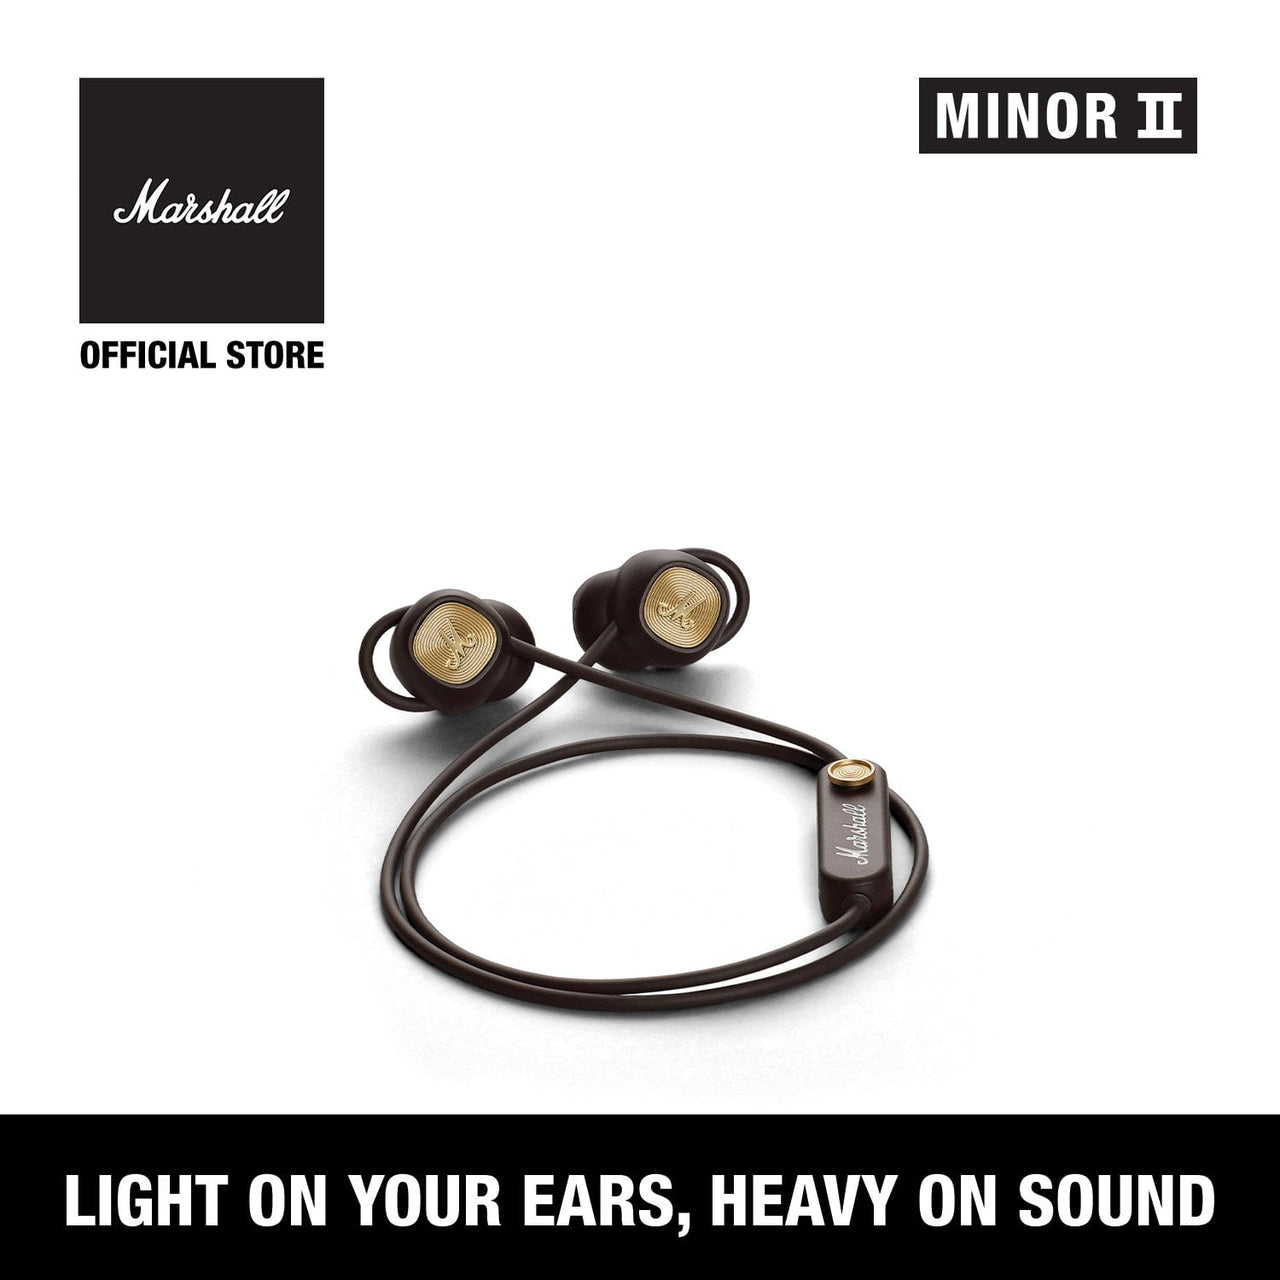 Minor II Bluetooth Brown [EVENT EXCLUSIVE], Headphones, Marshall Headphones, ASH Asia